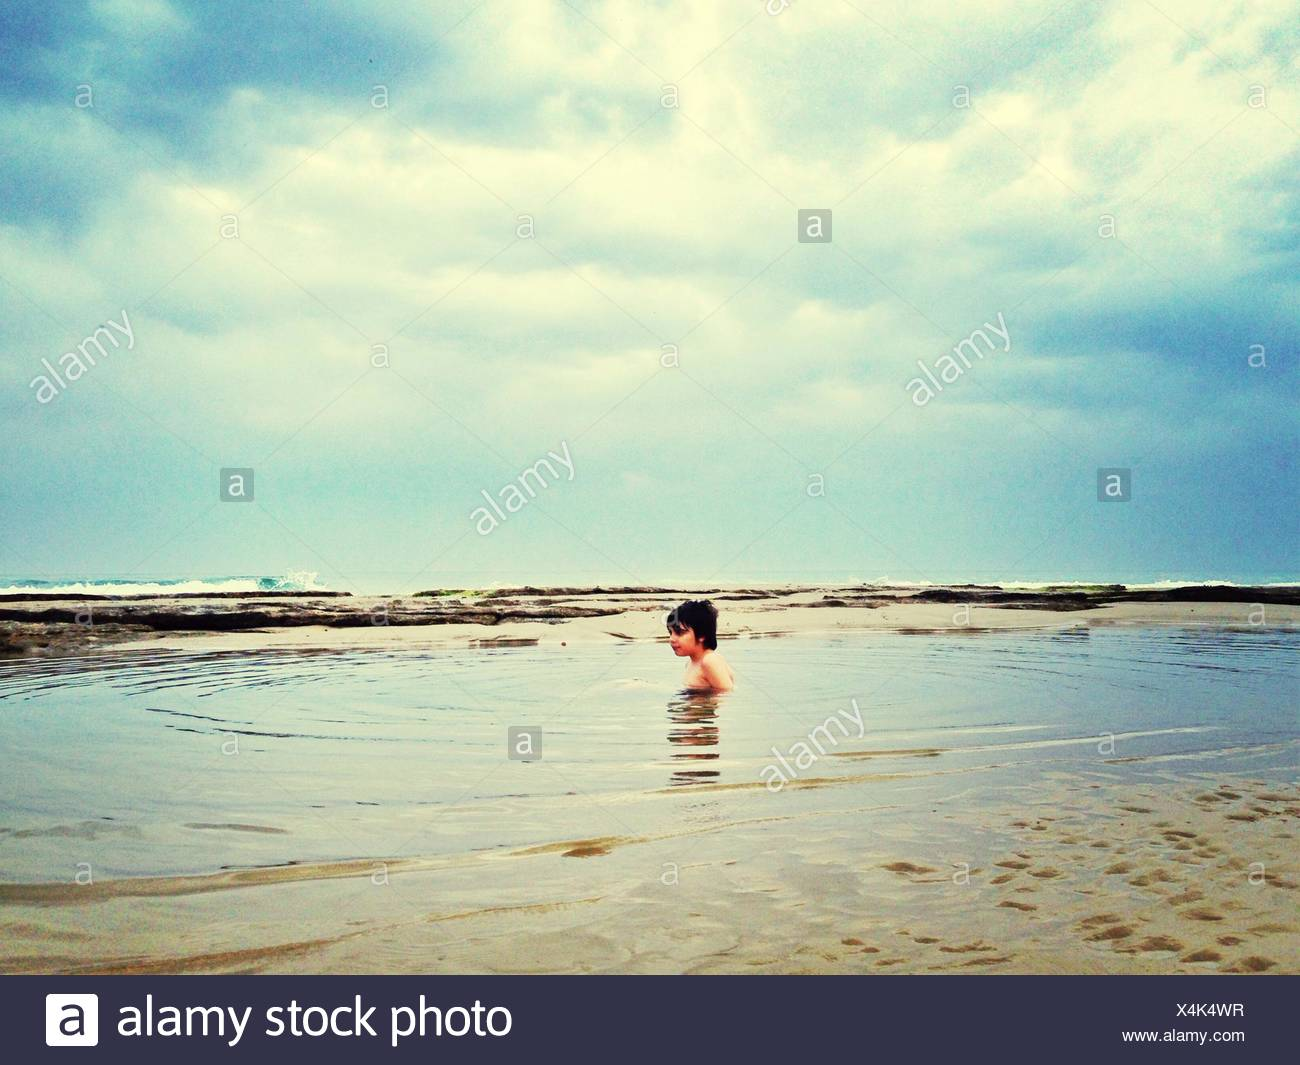 Shirtless Boy a nuotare in mare Immagini Stock